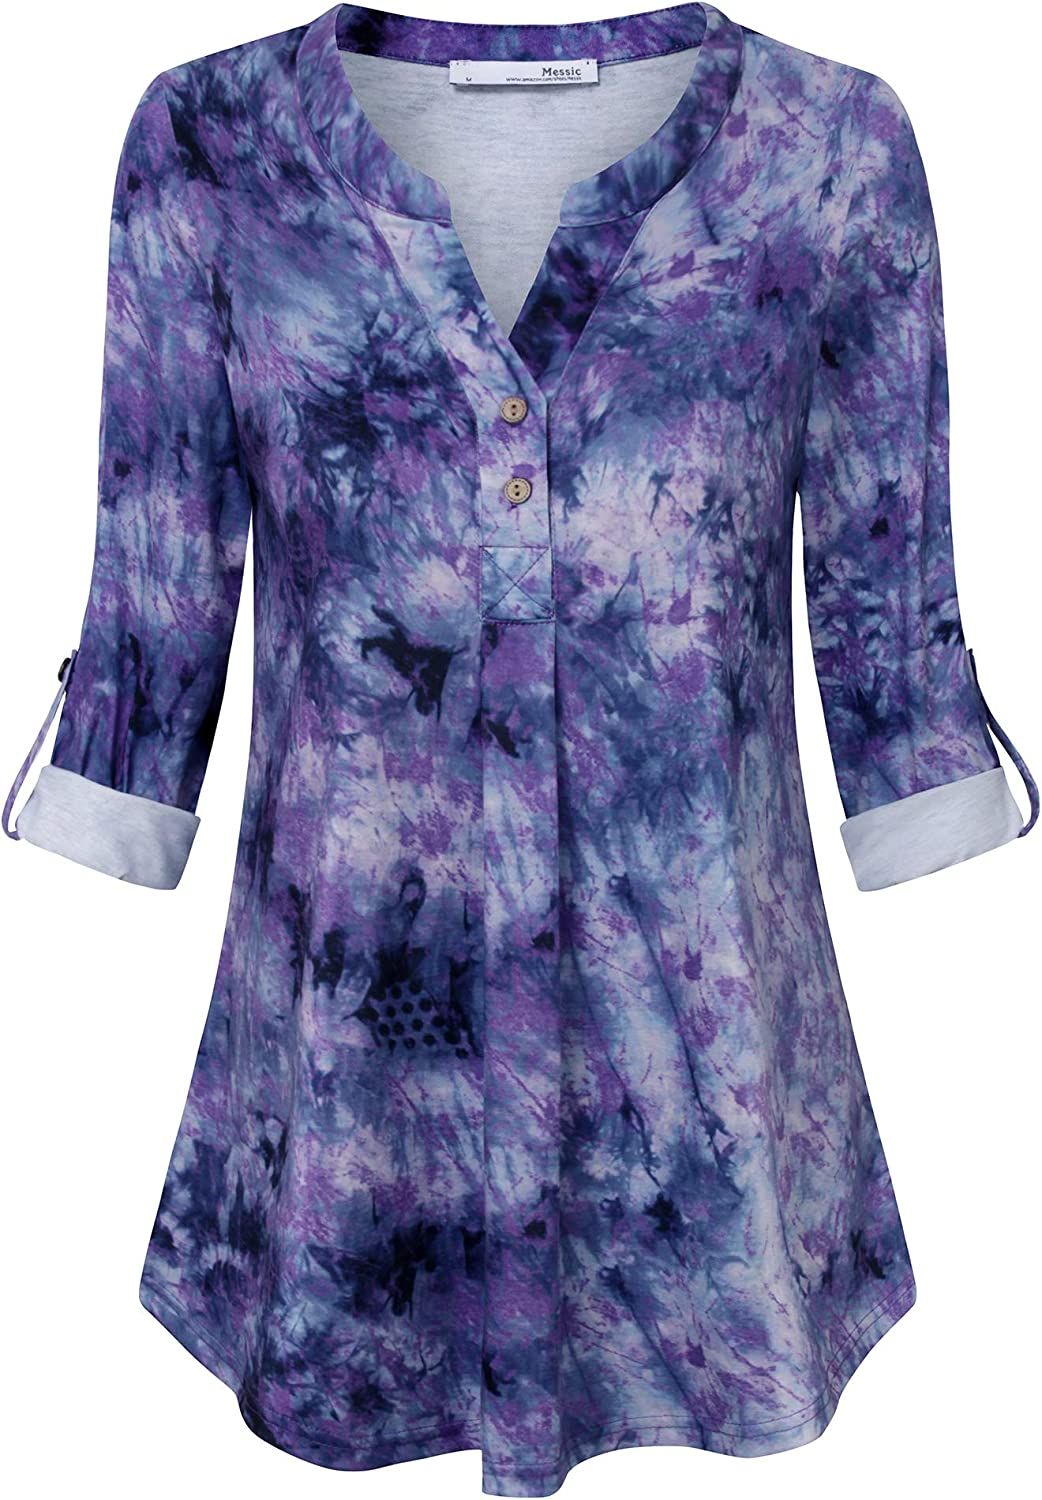 Messic Women's 3/4 Cuffed Sleeve Shirt Casual V Neck Pleated Flowy Henley Tunic Tops